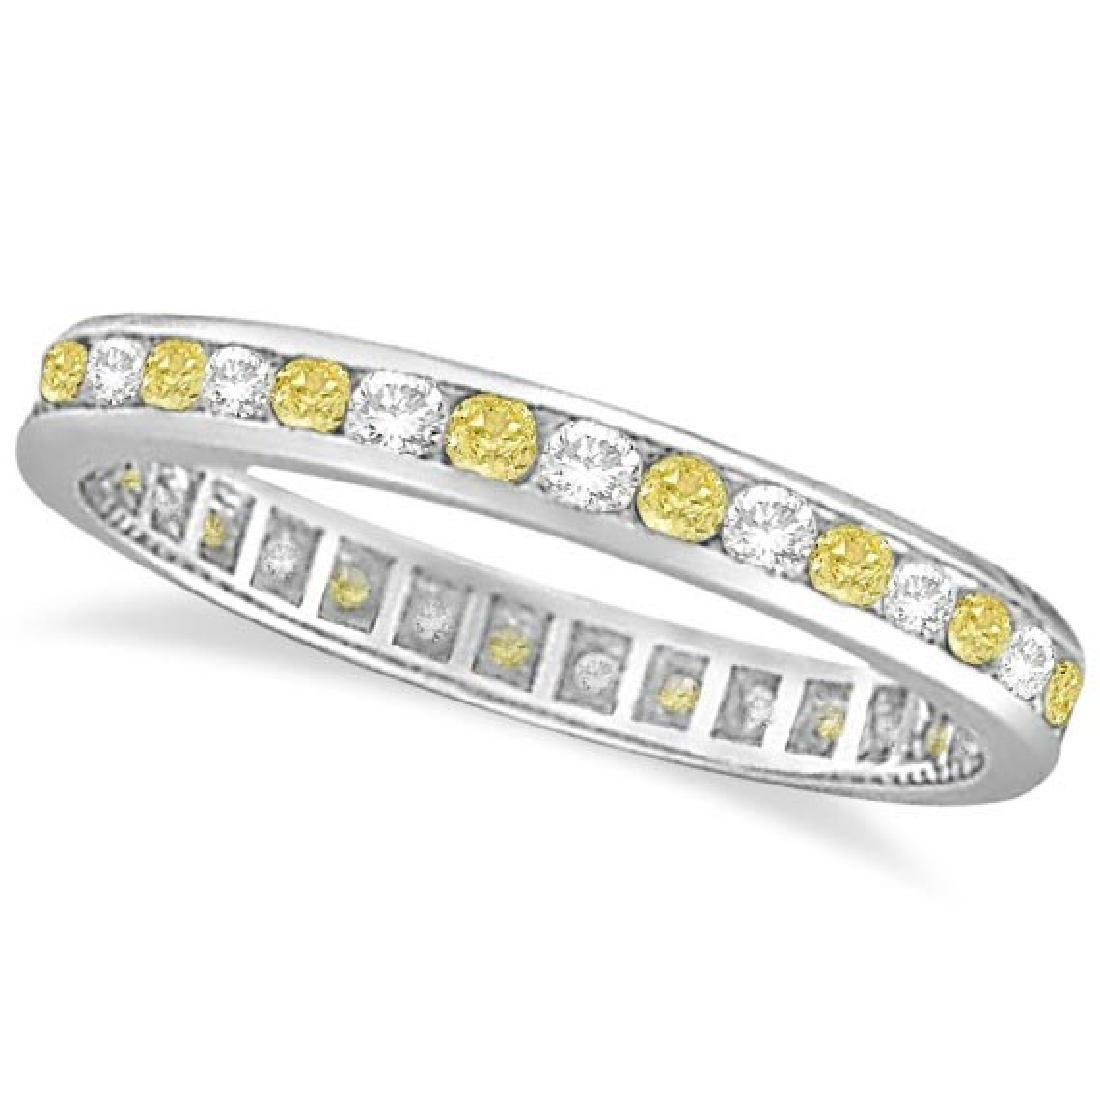 Channel-Set Yellow and White Diamond Eternity Ring 14k